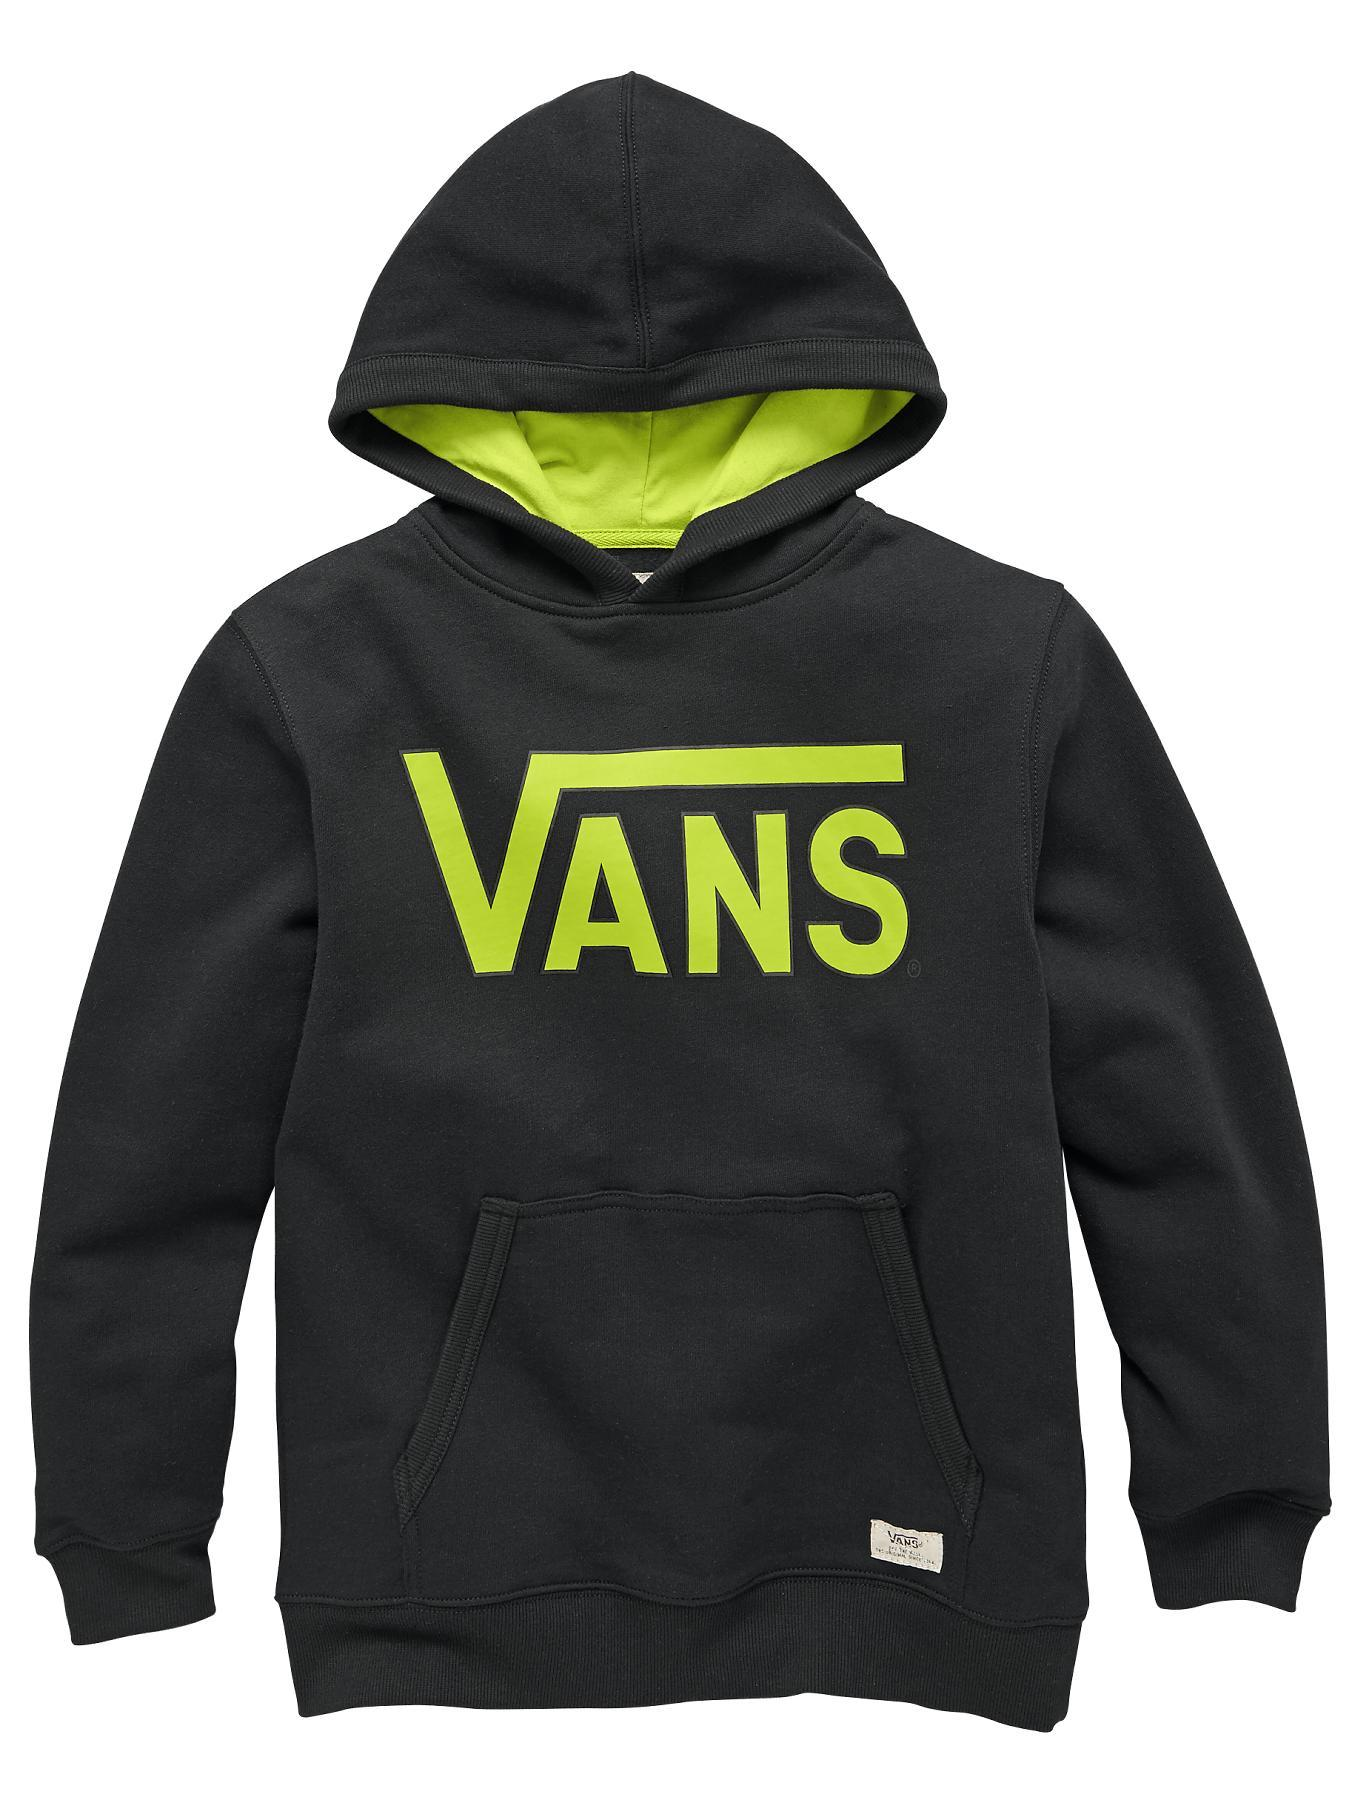 Youth Boys Classic Hoody, Black